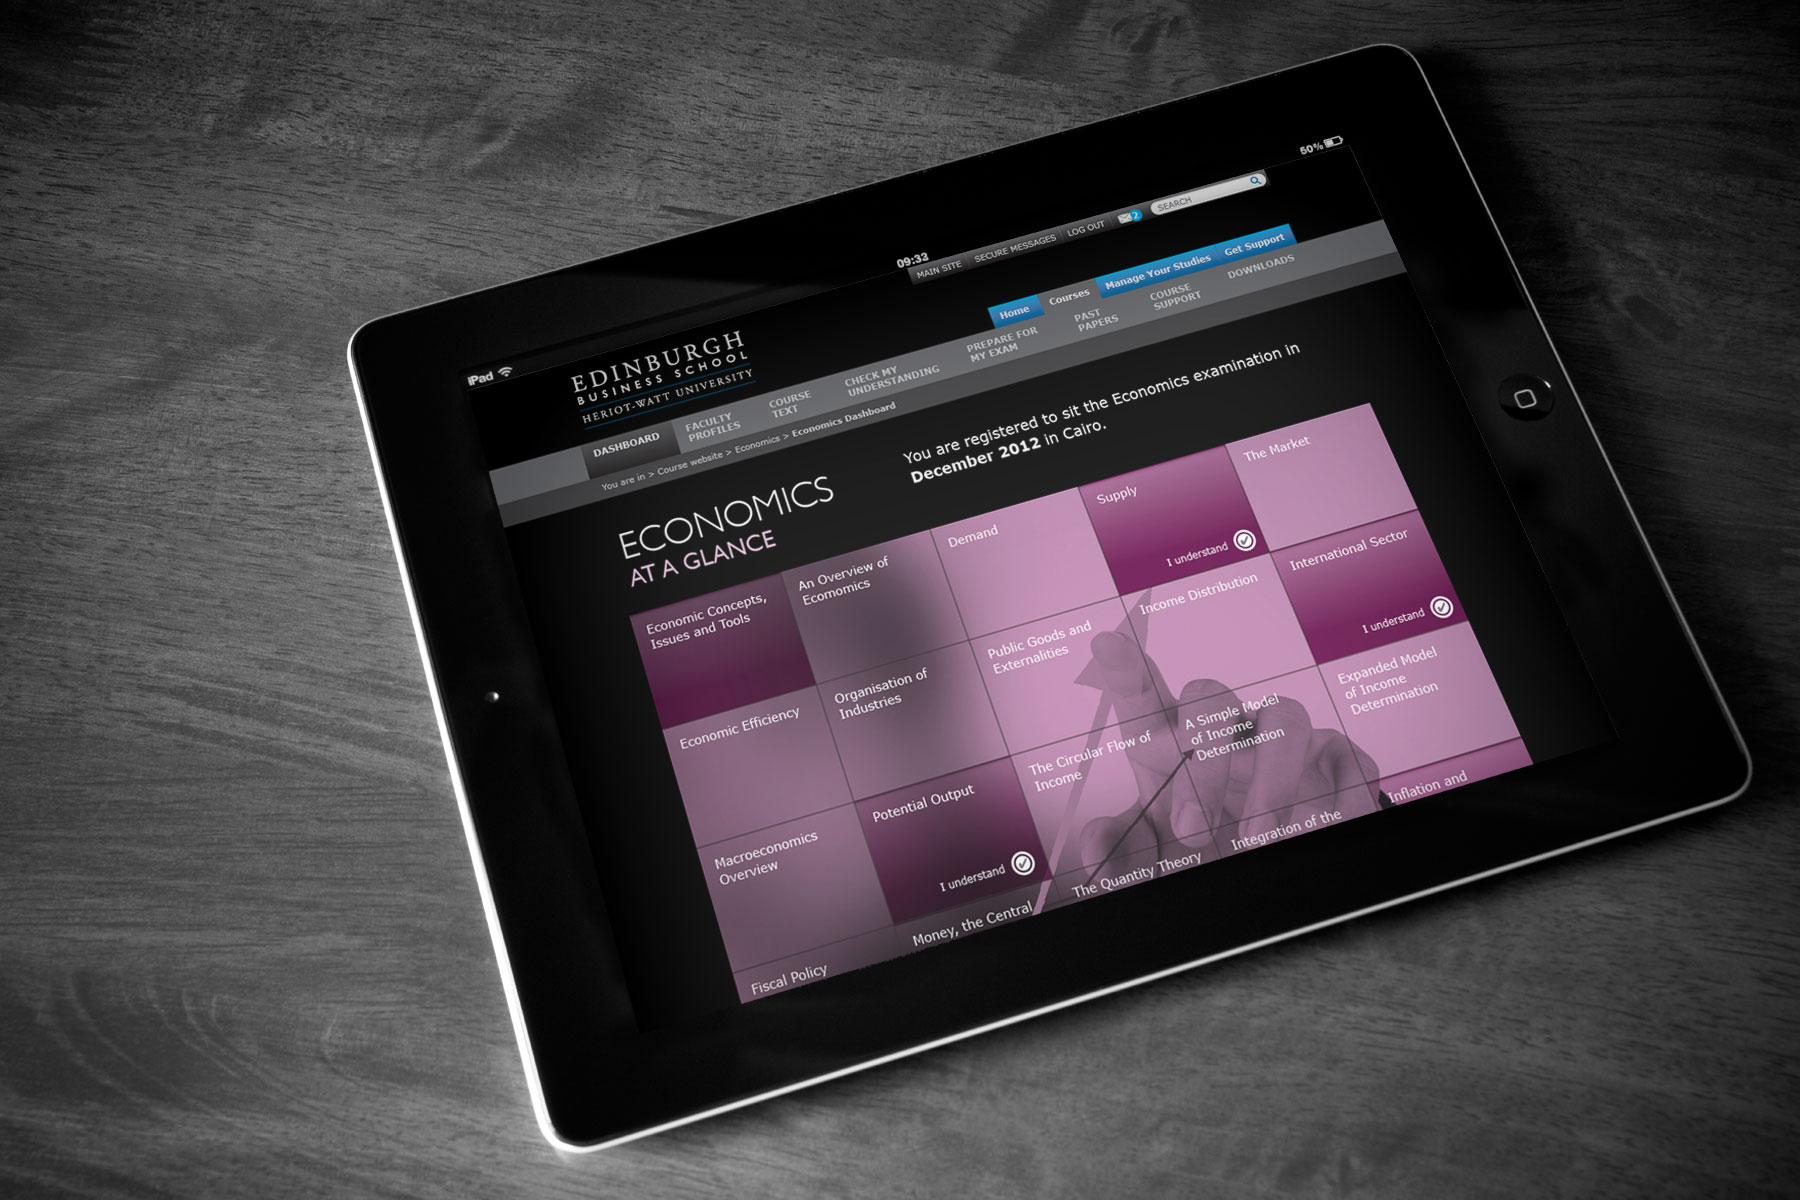 Edinburgh Business School - Courses dashboard